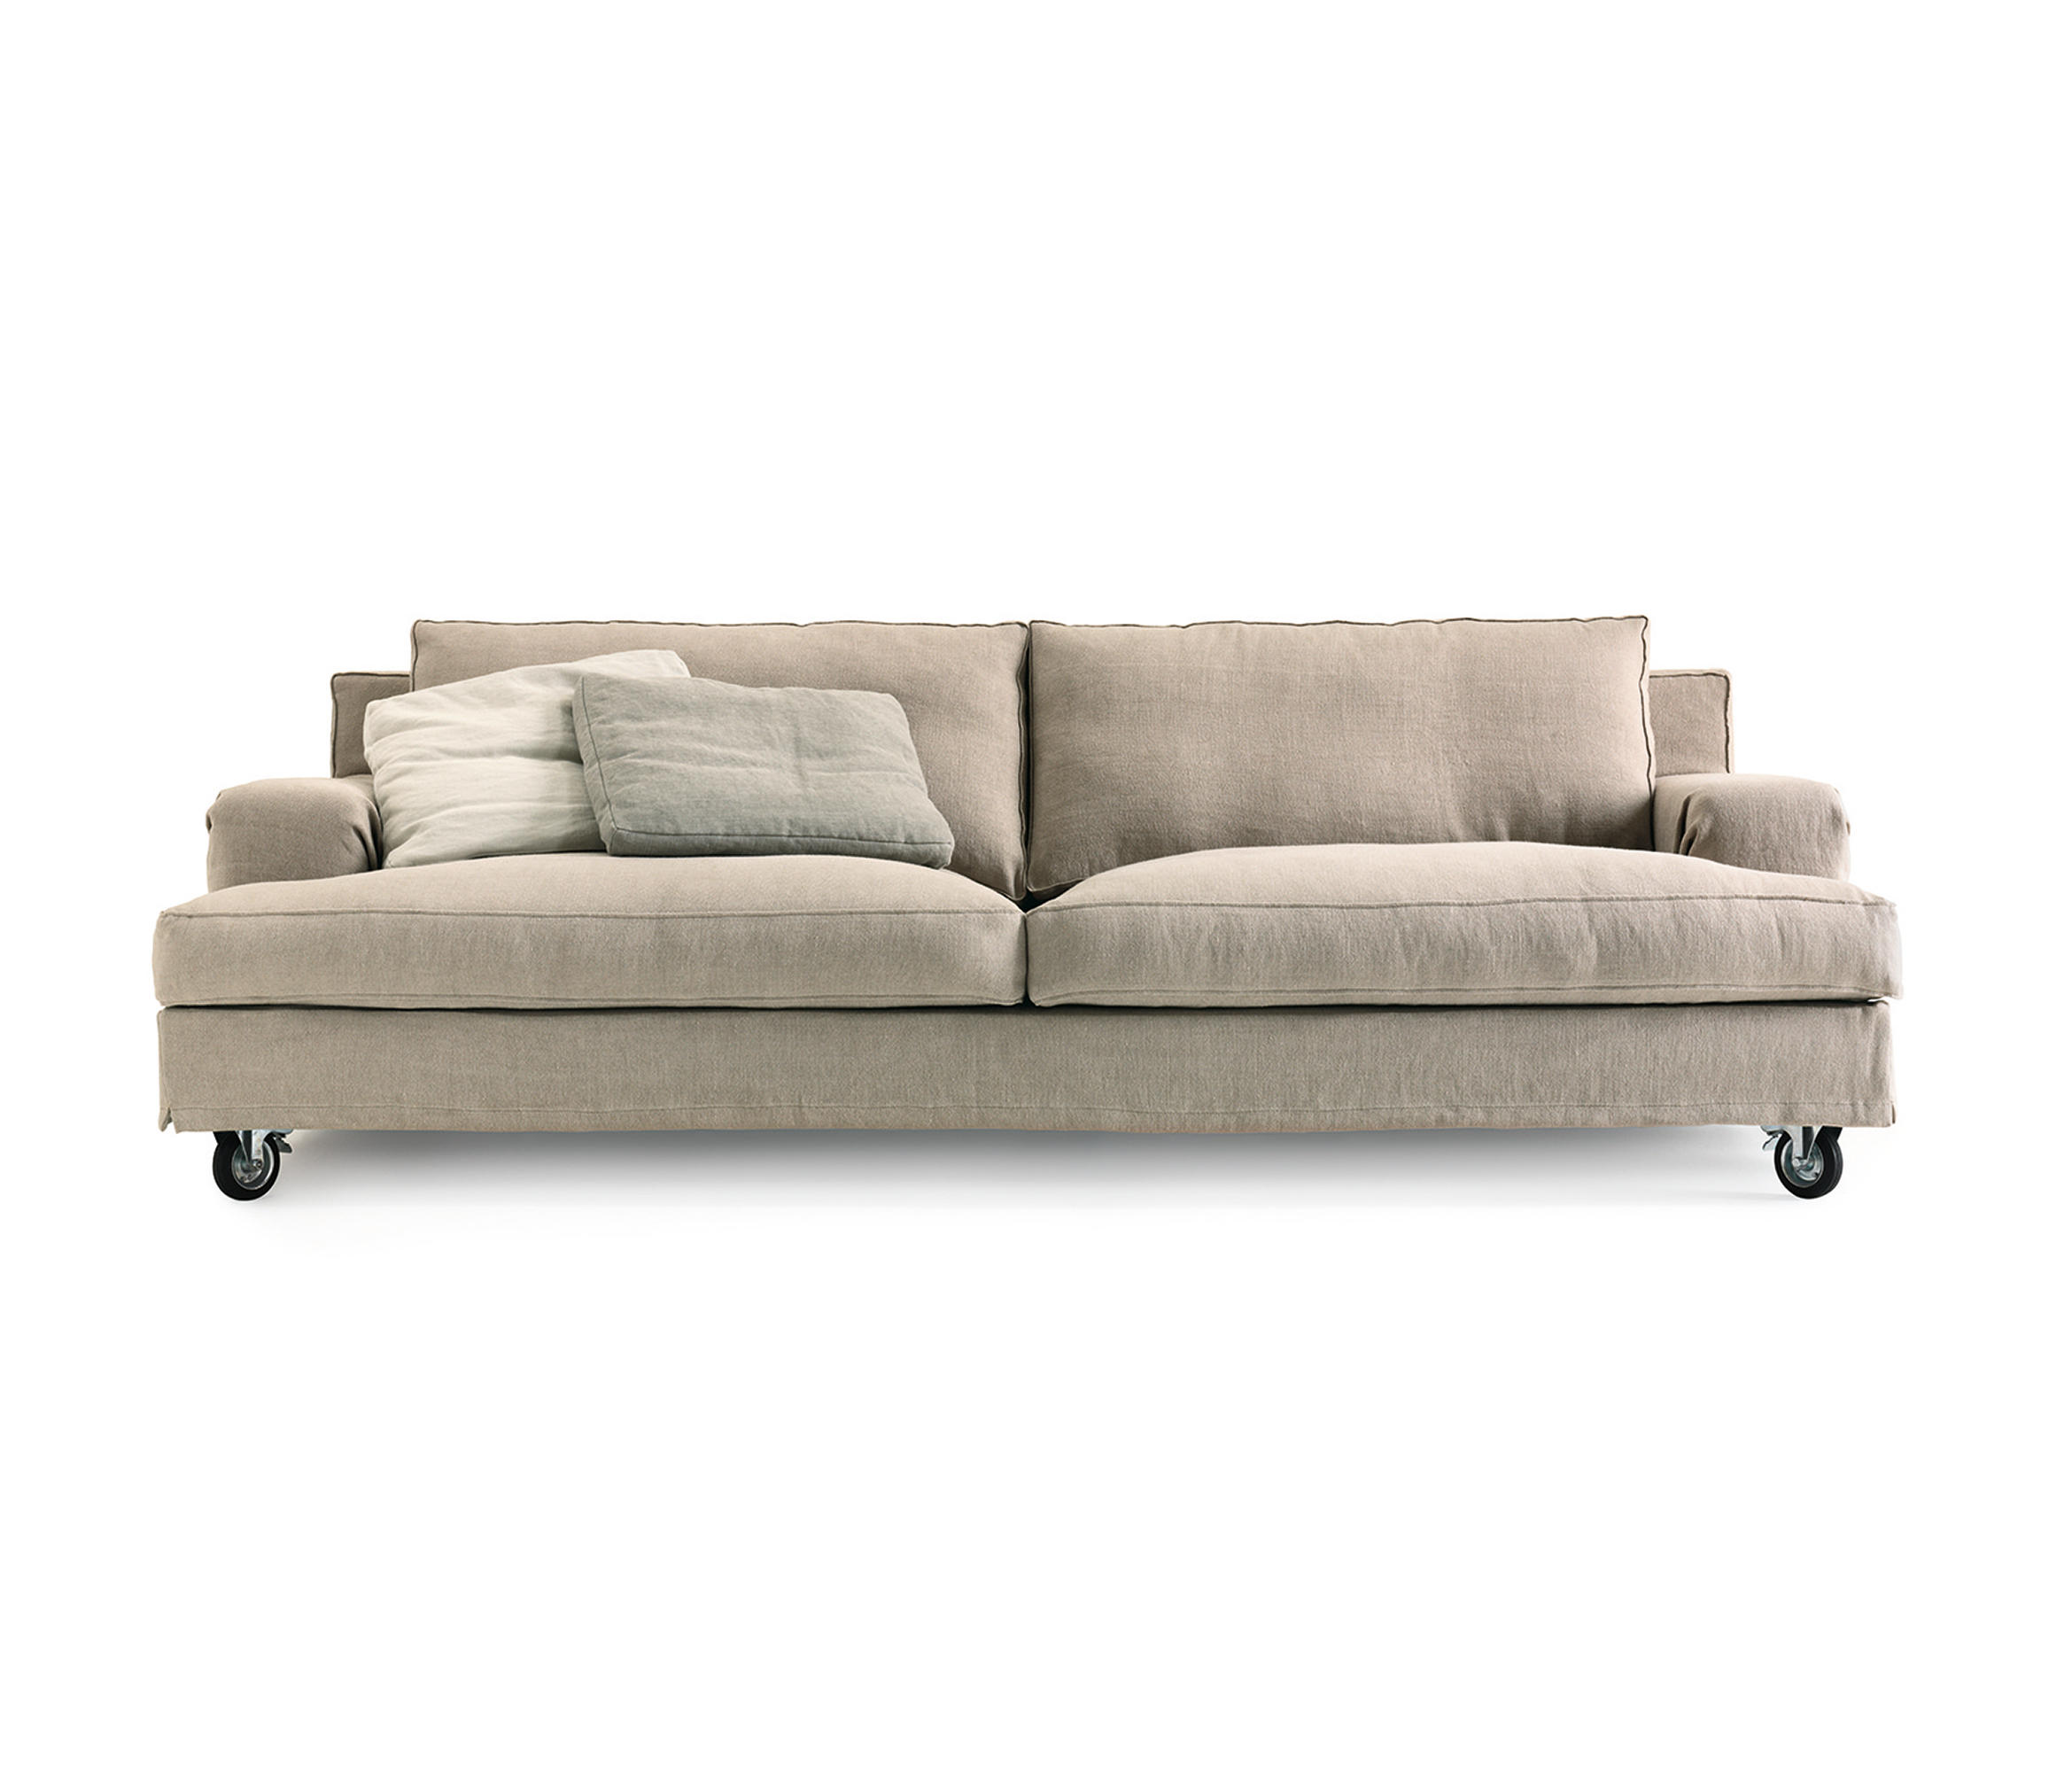 Bettsessel Chillax Sofa Mit Rollen Couch Im Industrie Look Sofa Mit Rollen 3